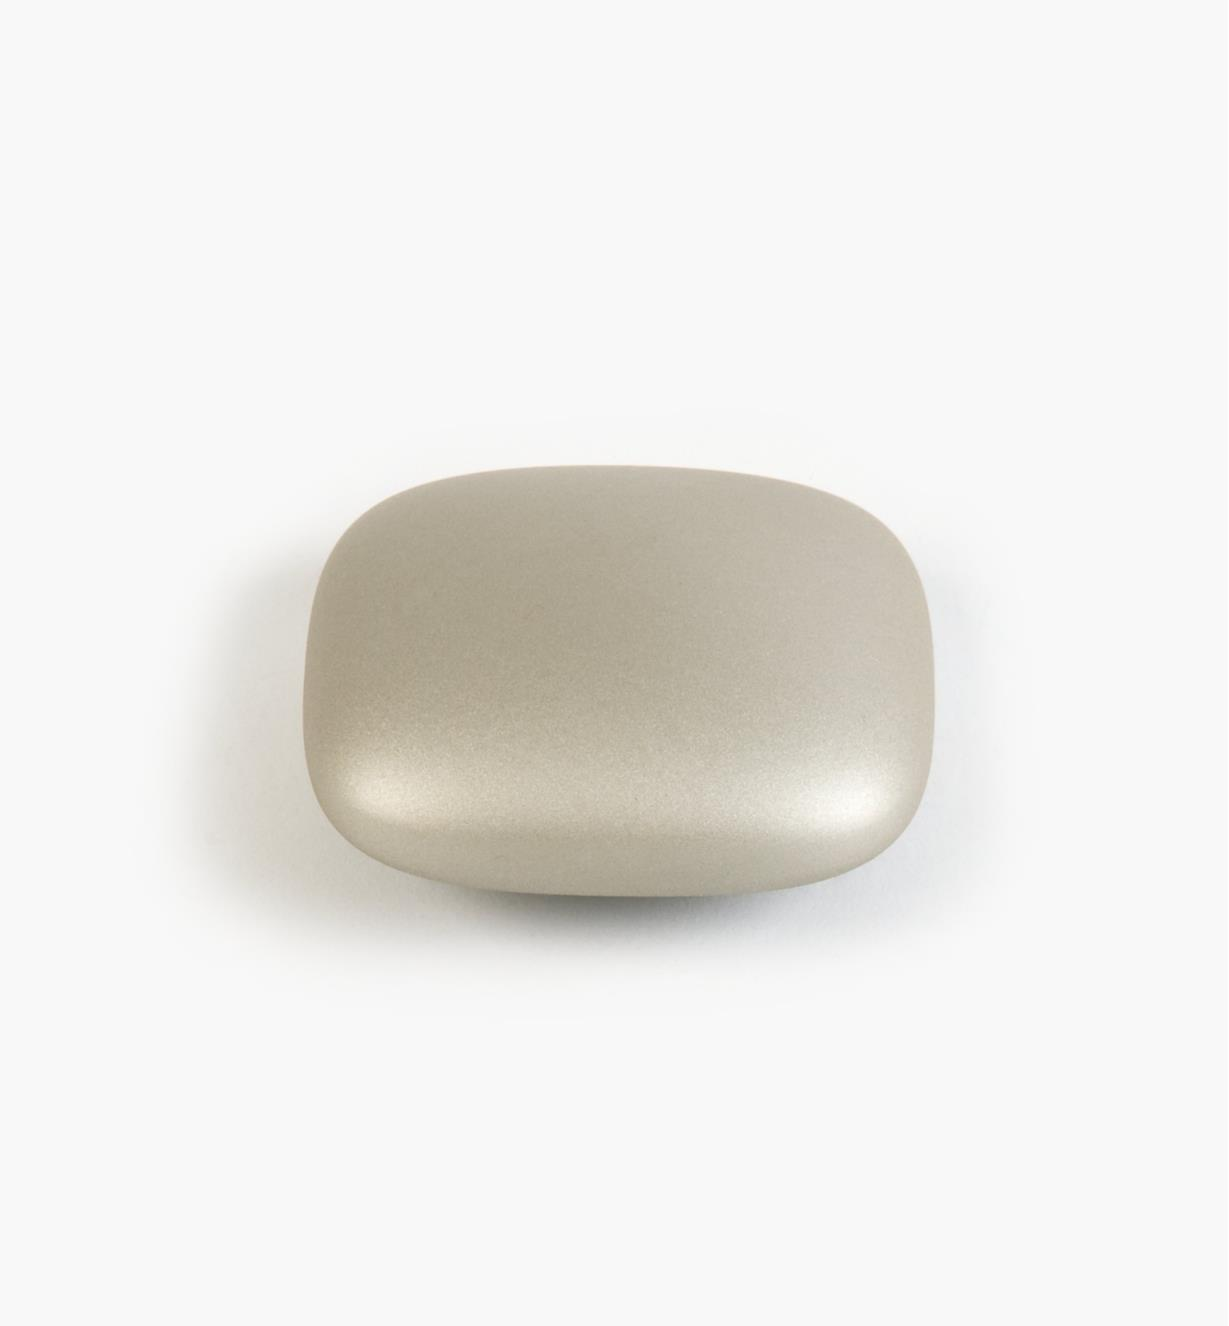 01G1601 - 32mm Sq. Satin Nickel Stone Pull